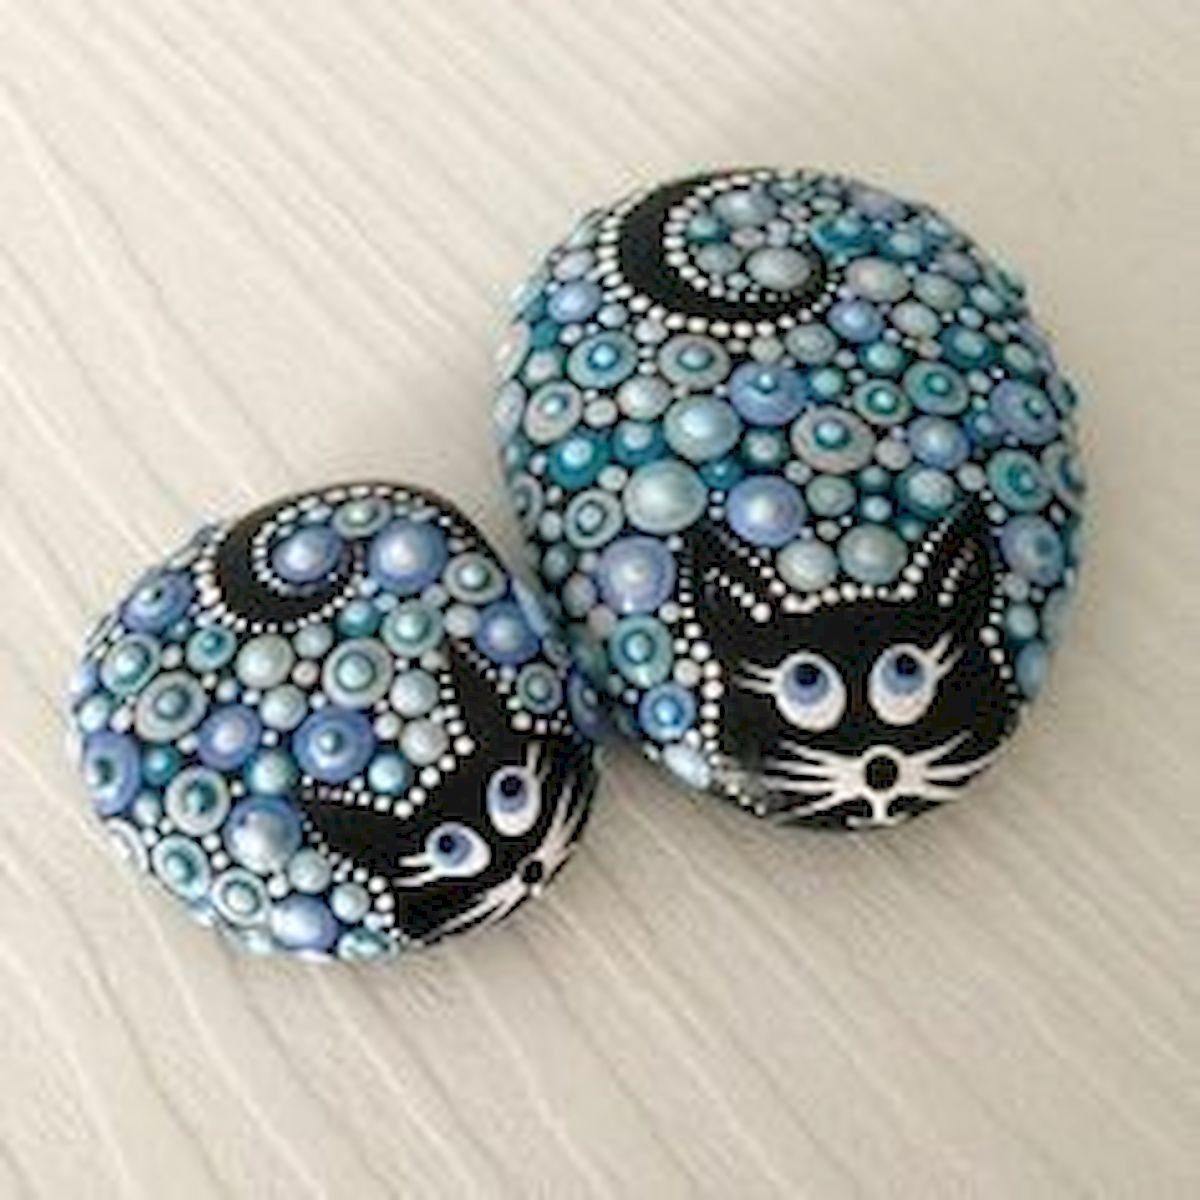 50 Best DIY Painted Rocks Animals Cats for Summer Ideas (41)